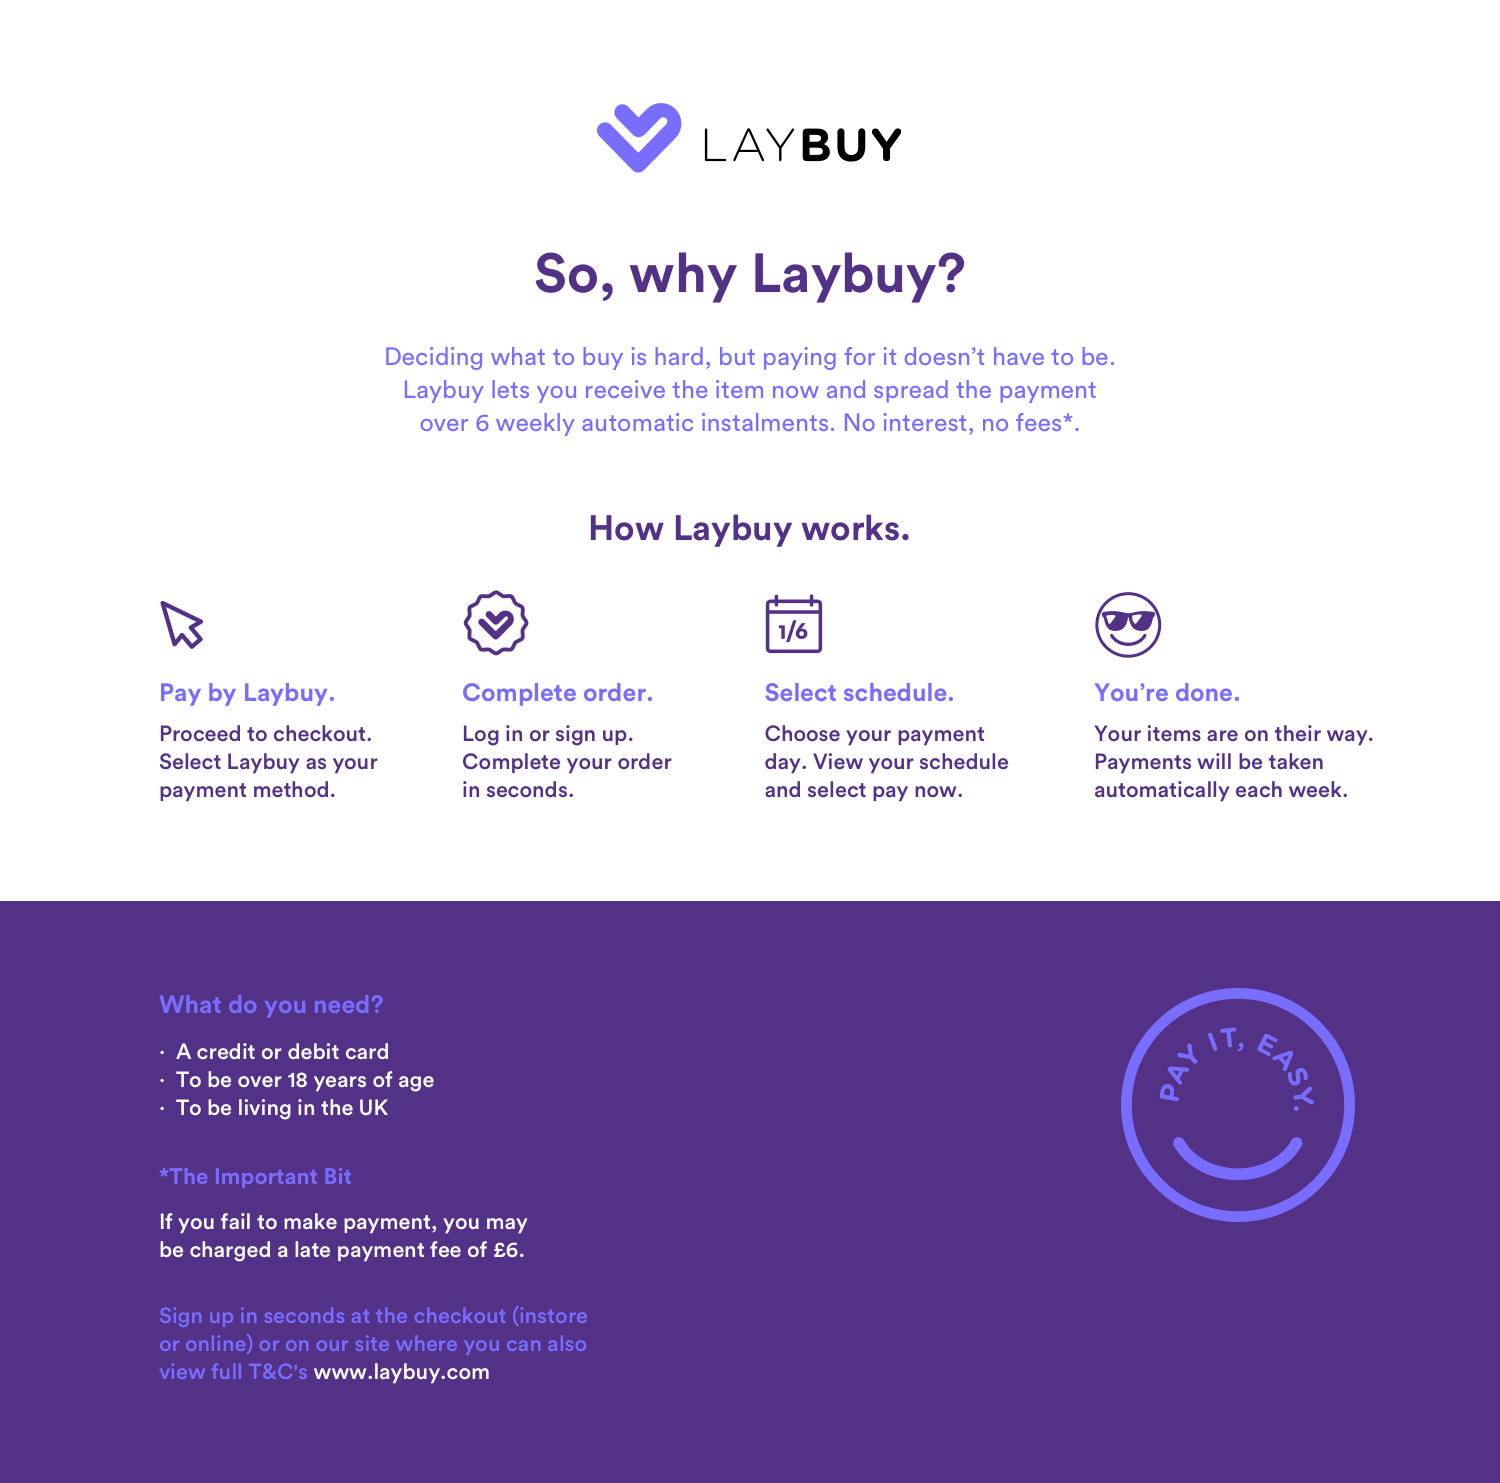 What is Laybuy?